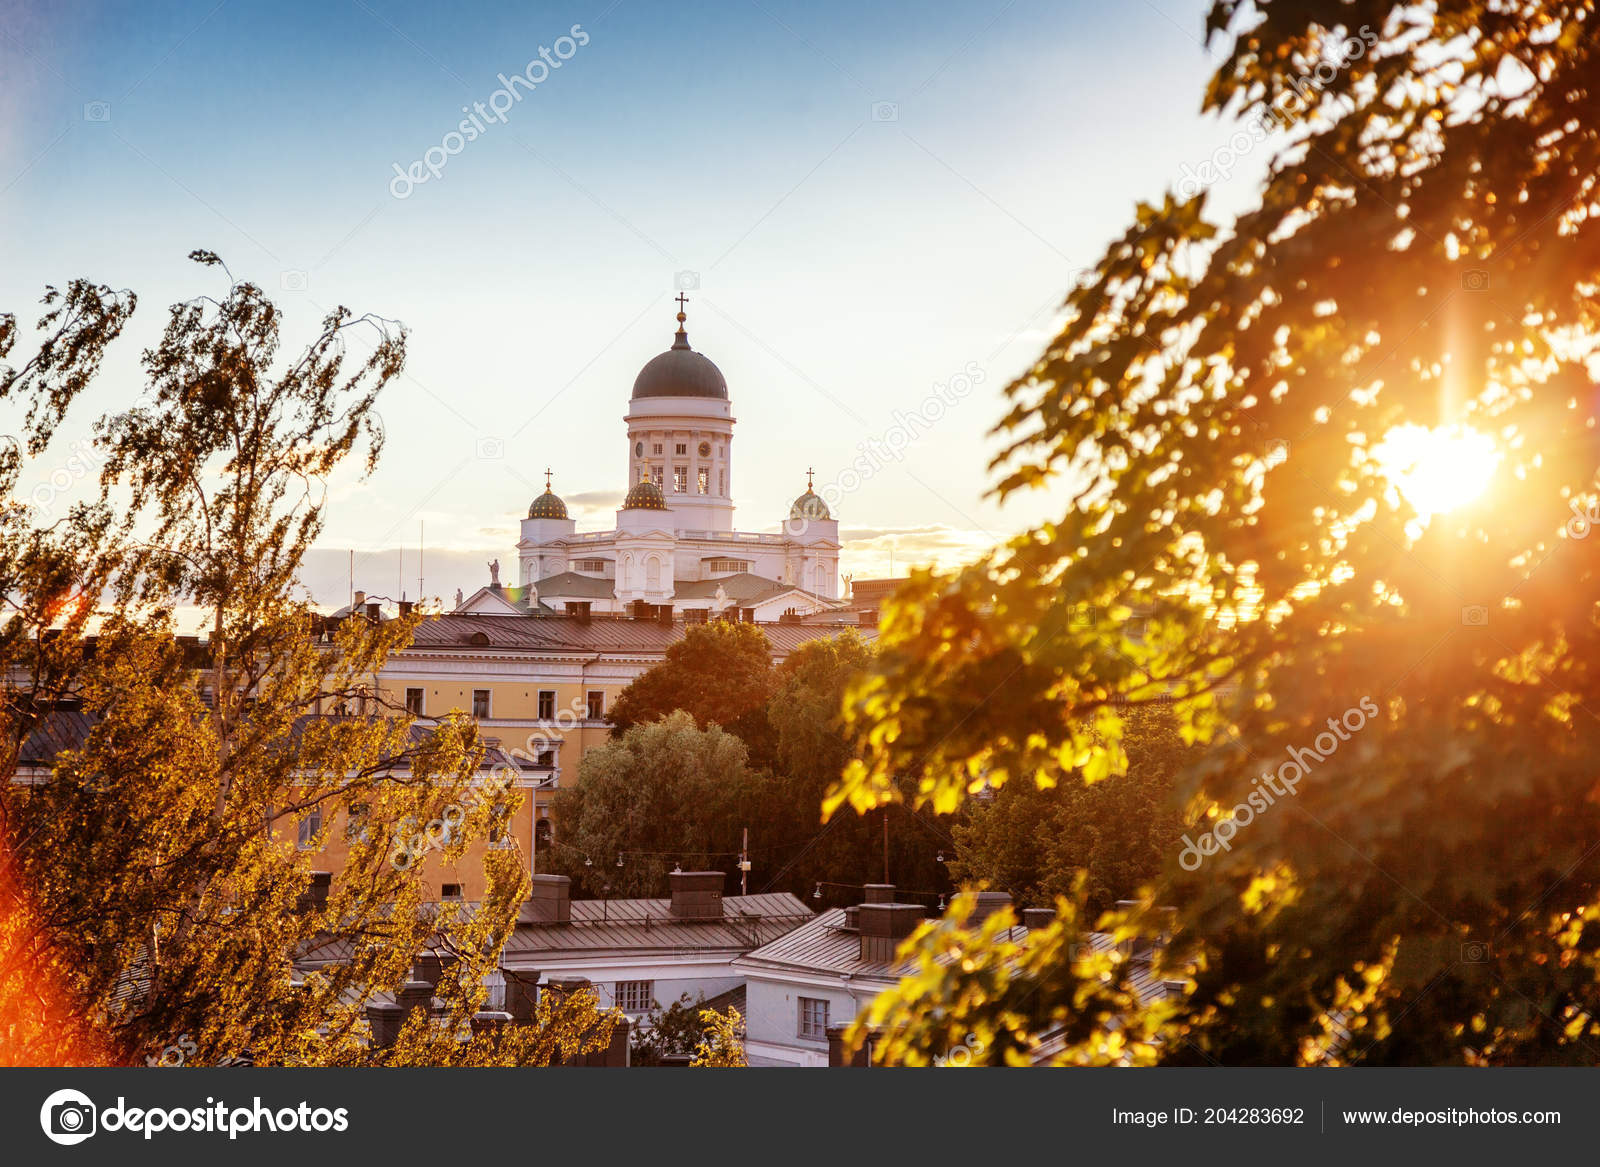 b15ea6b9537 View Central Cathedral Helsinki Finland Sunset Beautiful City Landscape —  Stock Photo